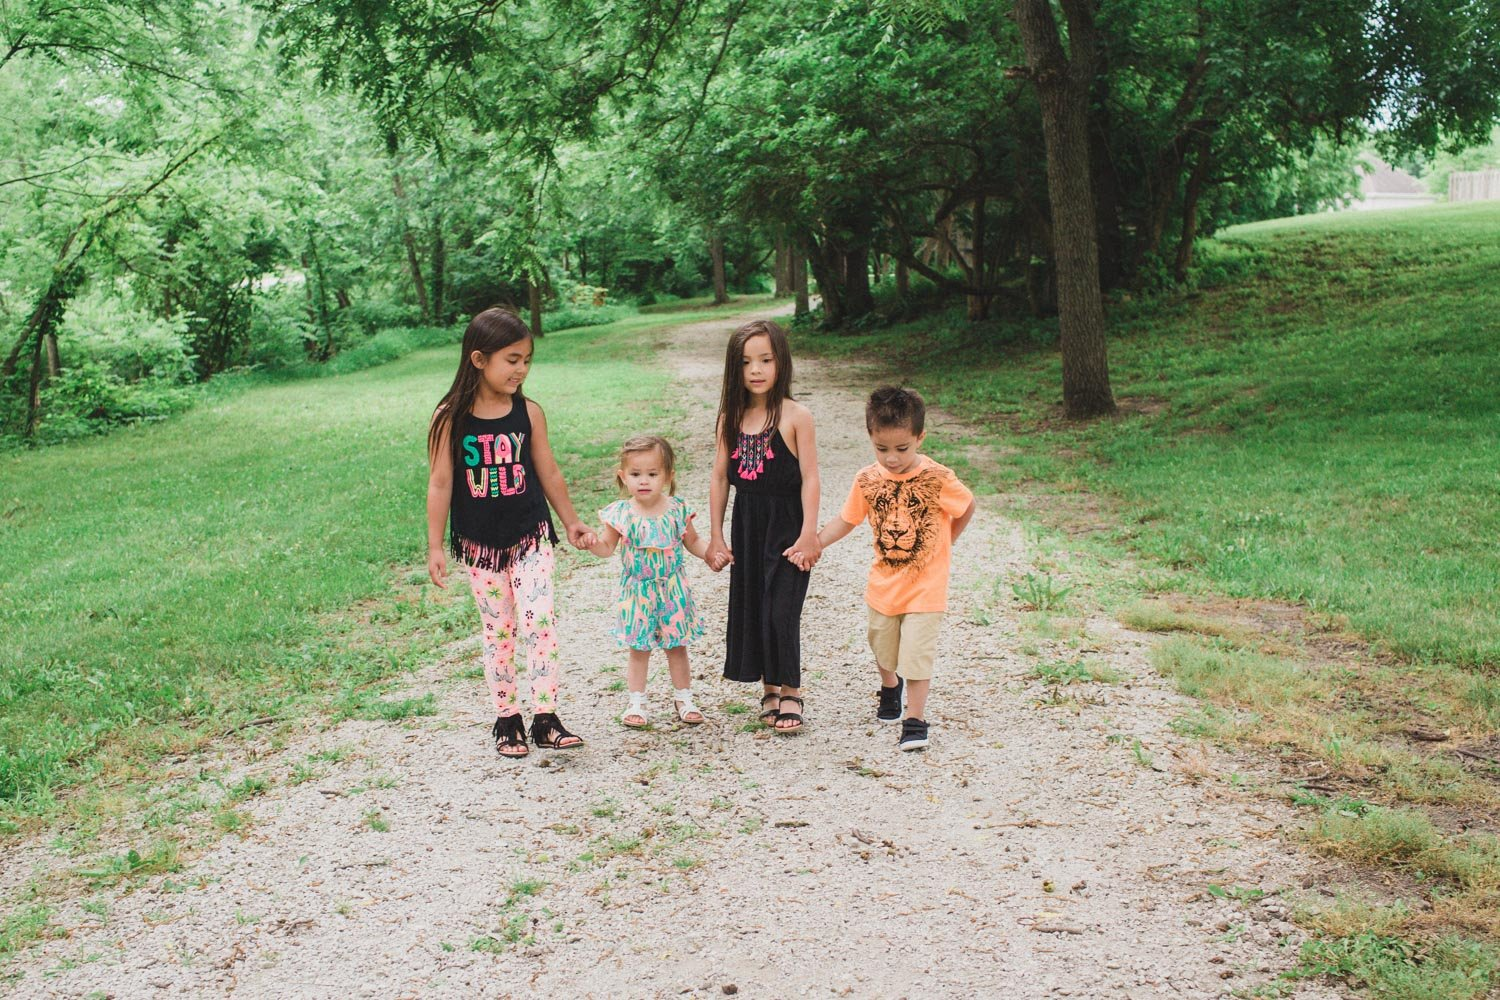 Jungle safari themed outfits for the entire family! Super cute and adorable for everyday wear.